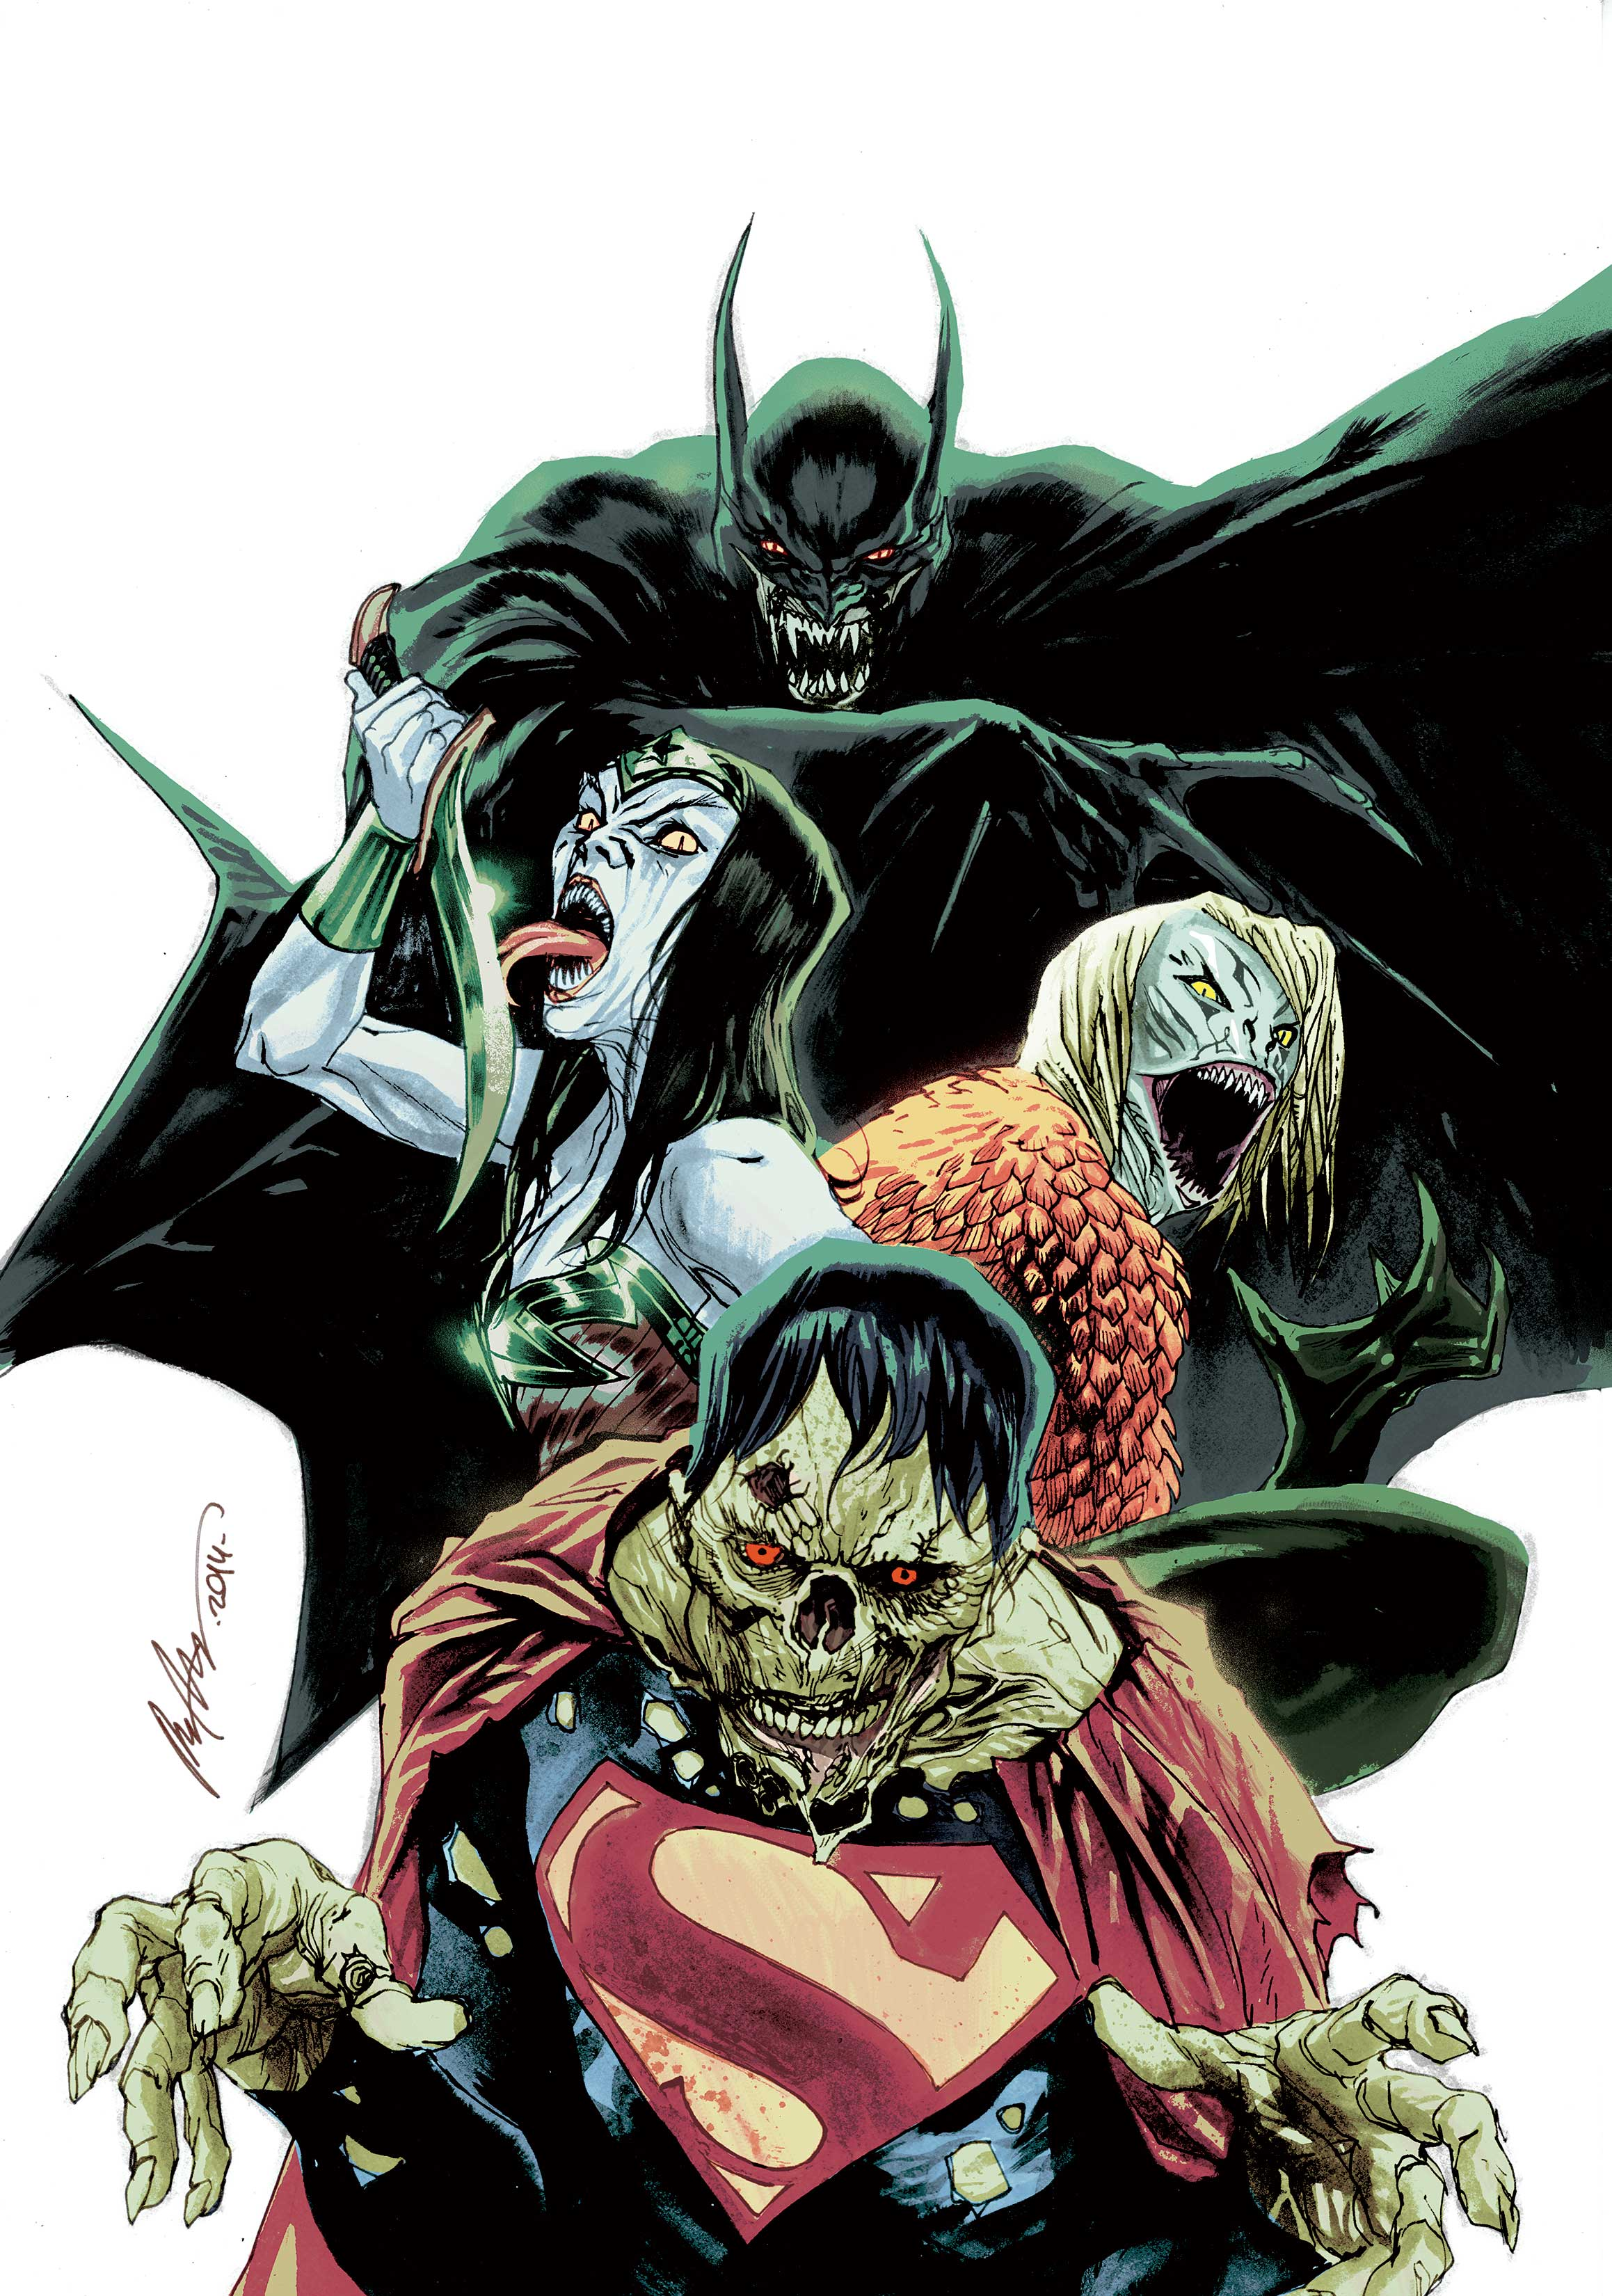 Justice League Vol 2 35 Textless Monsters of the Month Variant.jpg